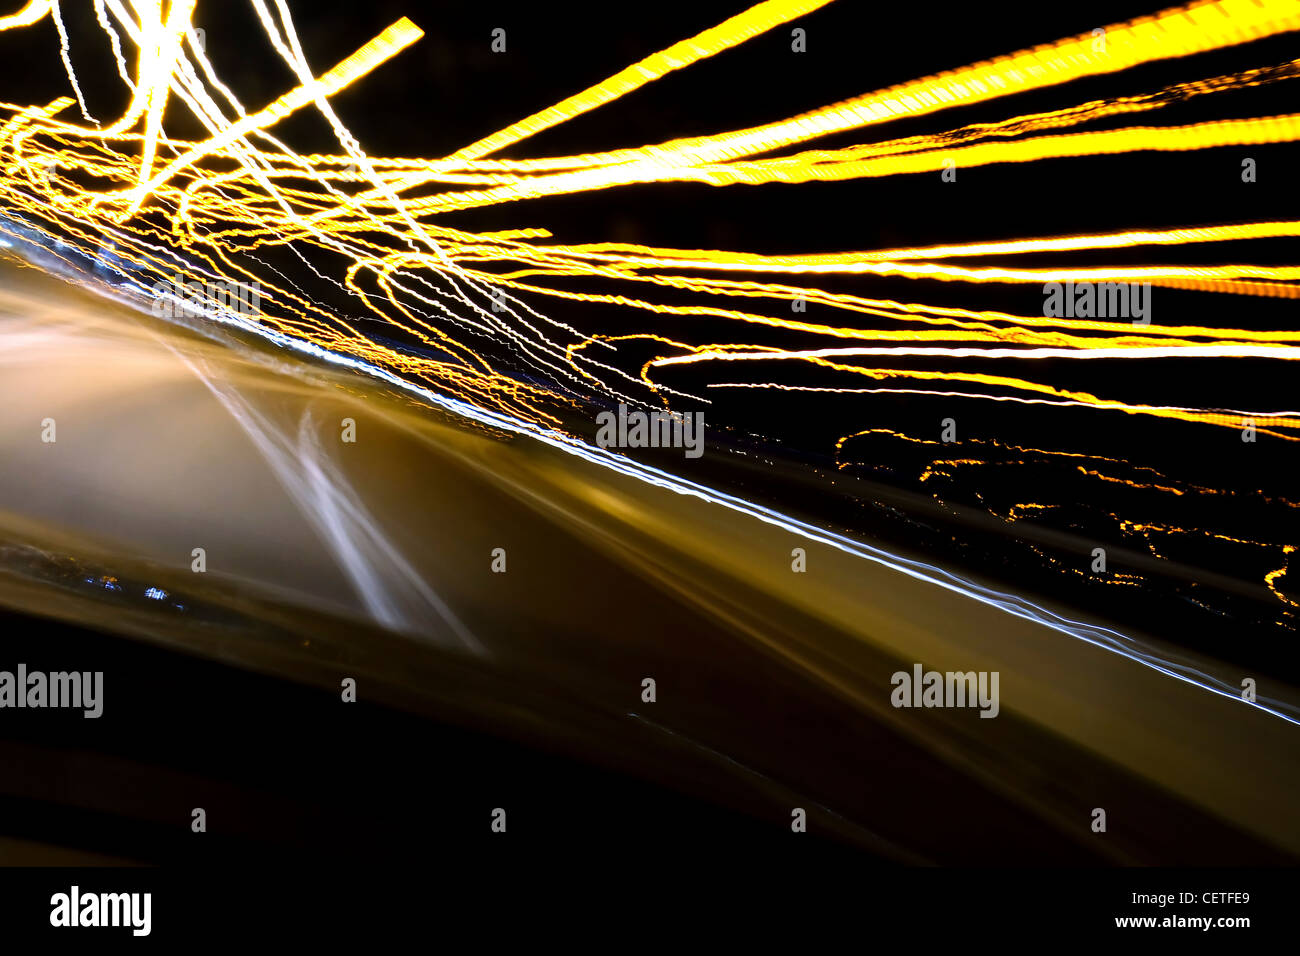 A view from a moving car to light trails on the M1 motorway at night. - Stock Image